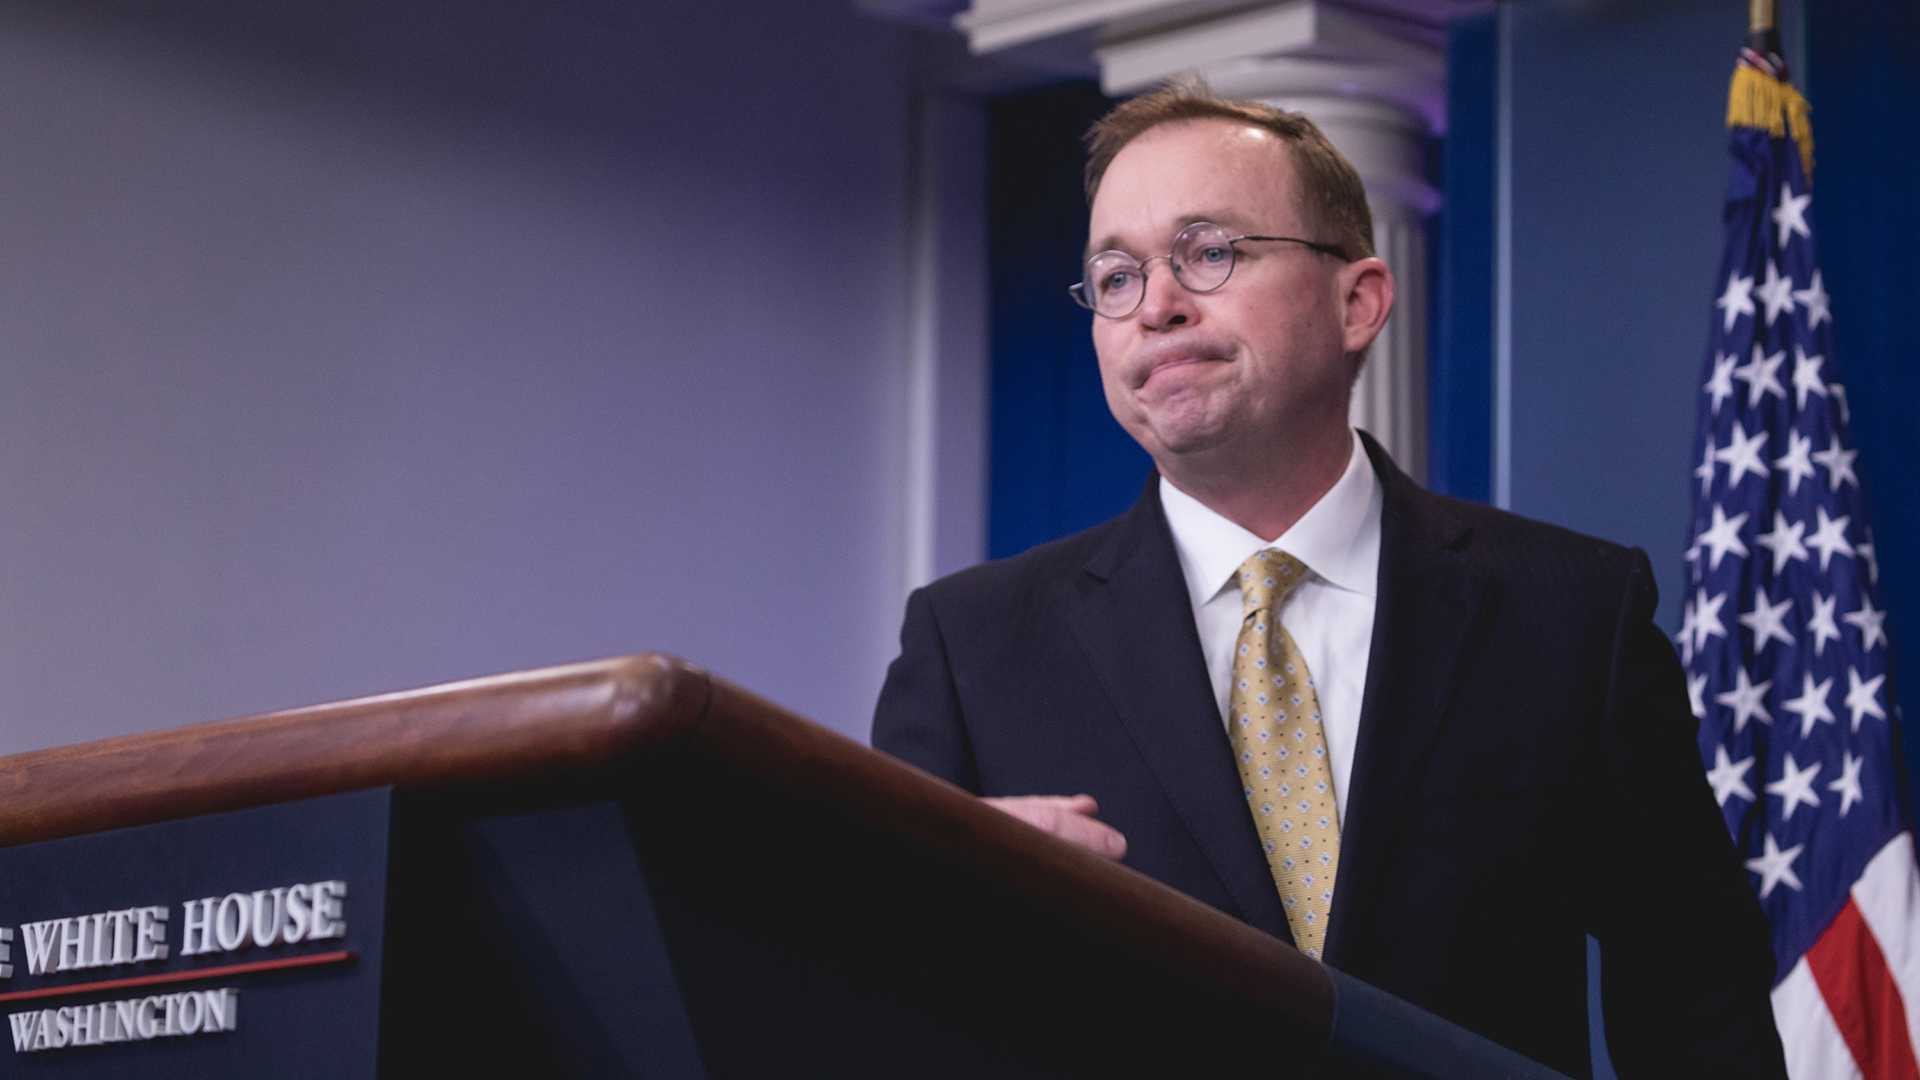 Office of Management and Budget Director Mick Mulvaney speaks to press during a briefing on the government shutdown on Saturday, January 20, 2018 in the James S. Brady Press Briefing Room of the White House in Washington, D.C. (Cheriss May/NurPhoto/Zuma Press/TNS)